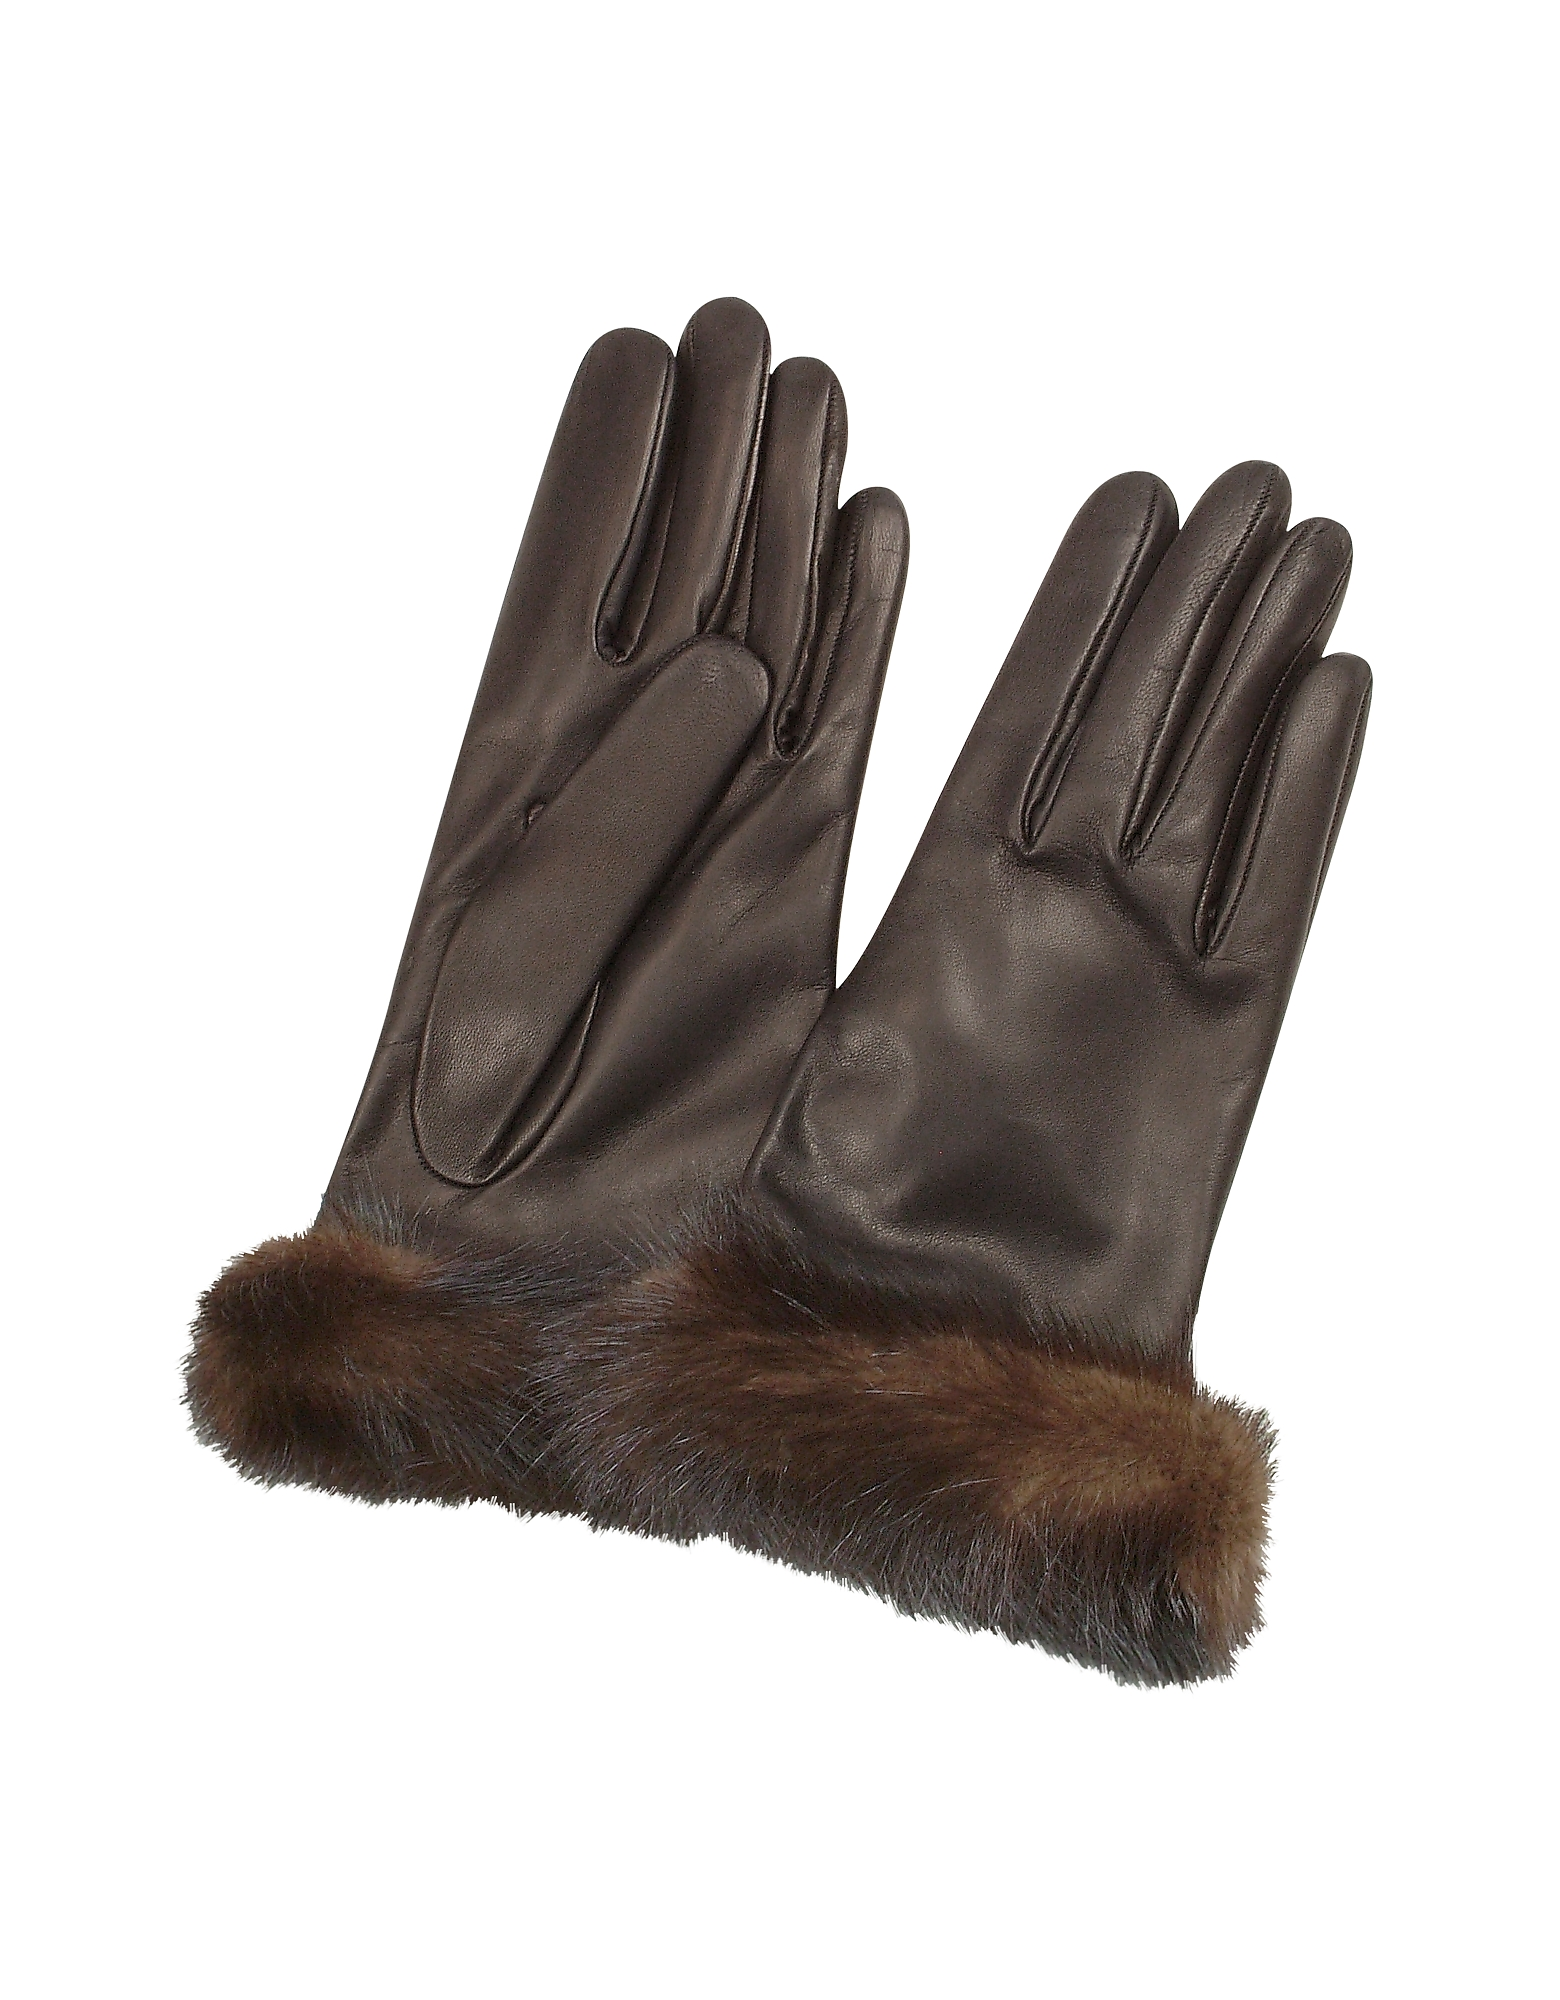 Forzieri Women's Dark Brown Italian Nappa Leather Gloves w/Mink Fur